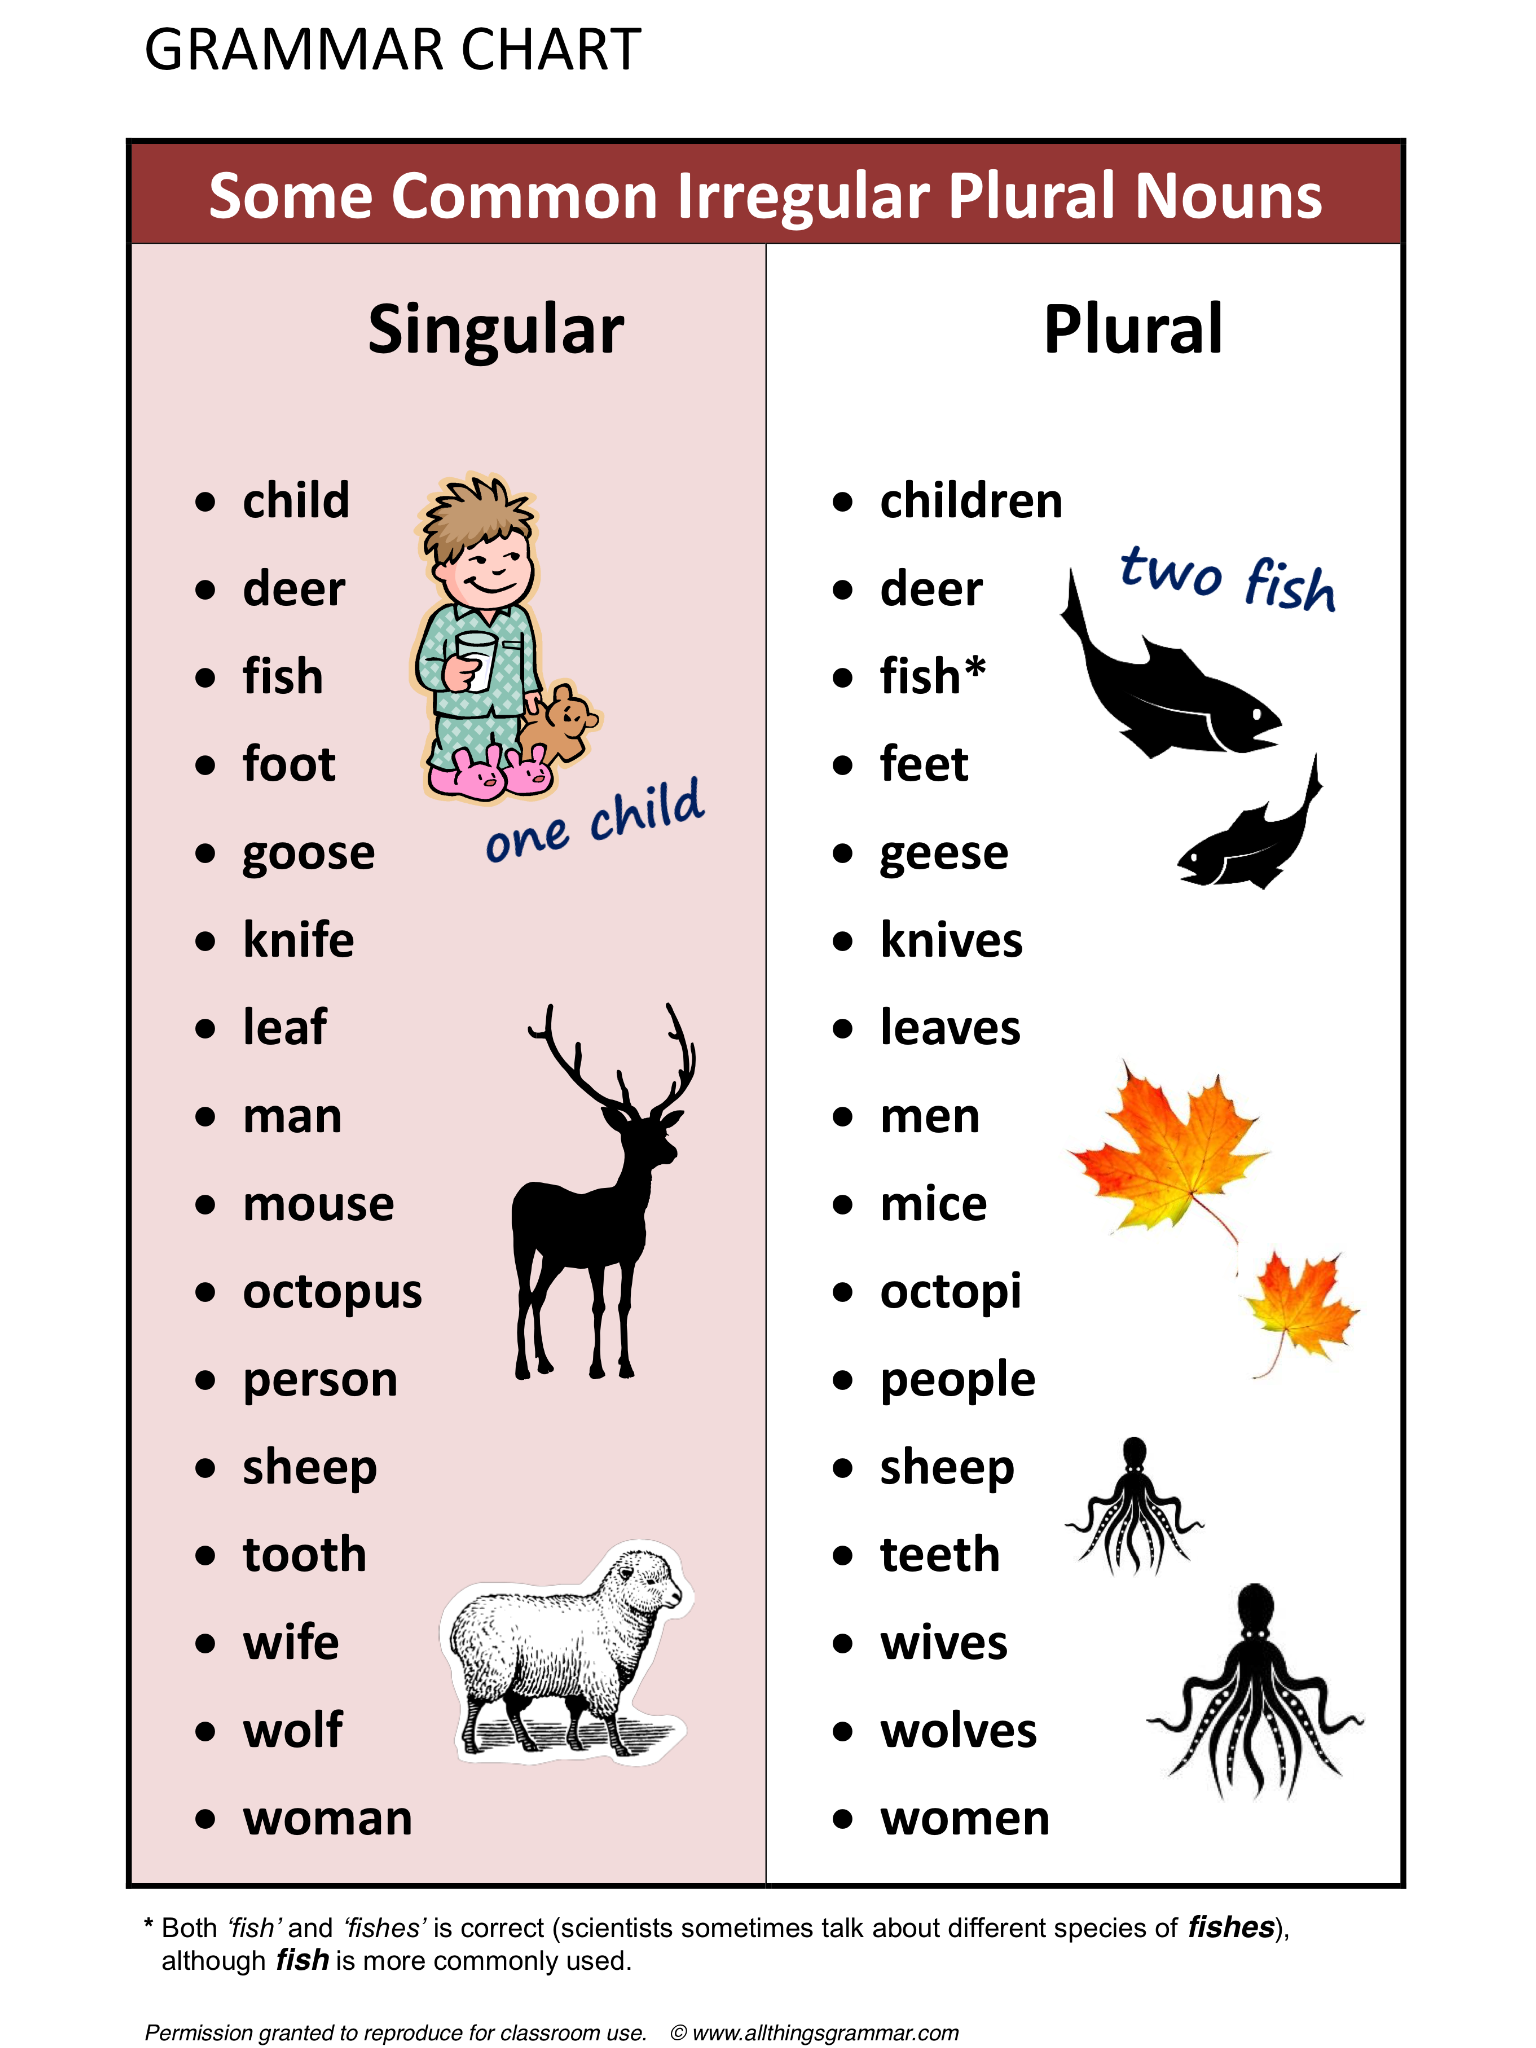 English Grammar Some Common Irregular Plural Nouns www ...